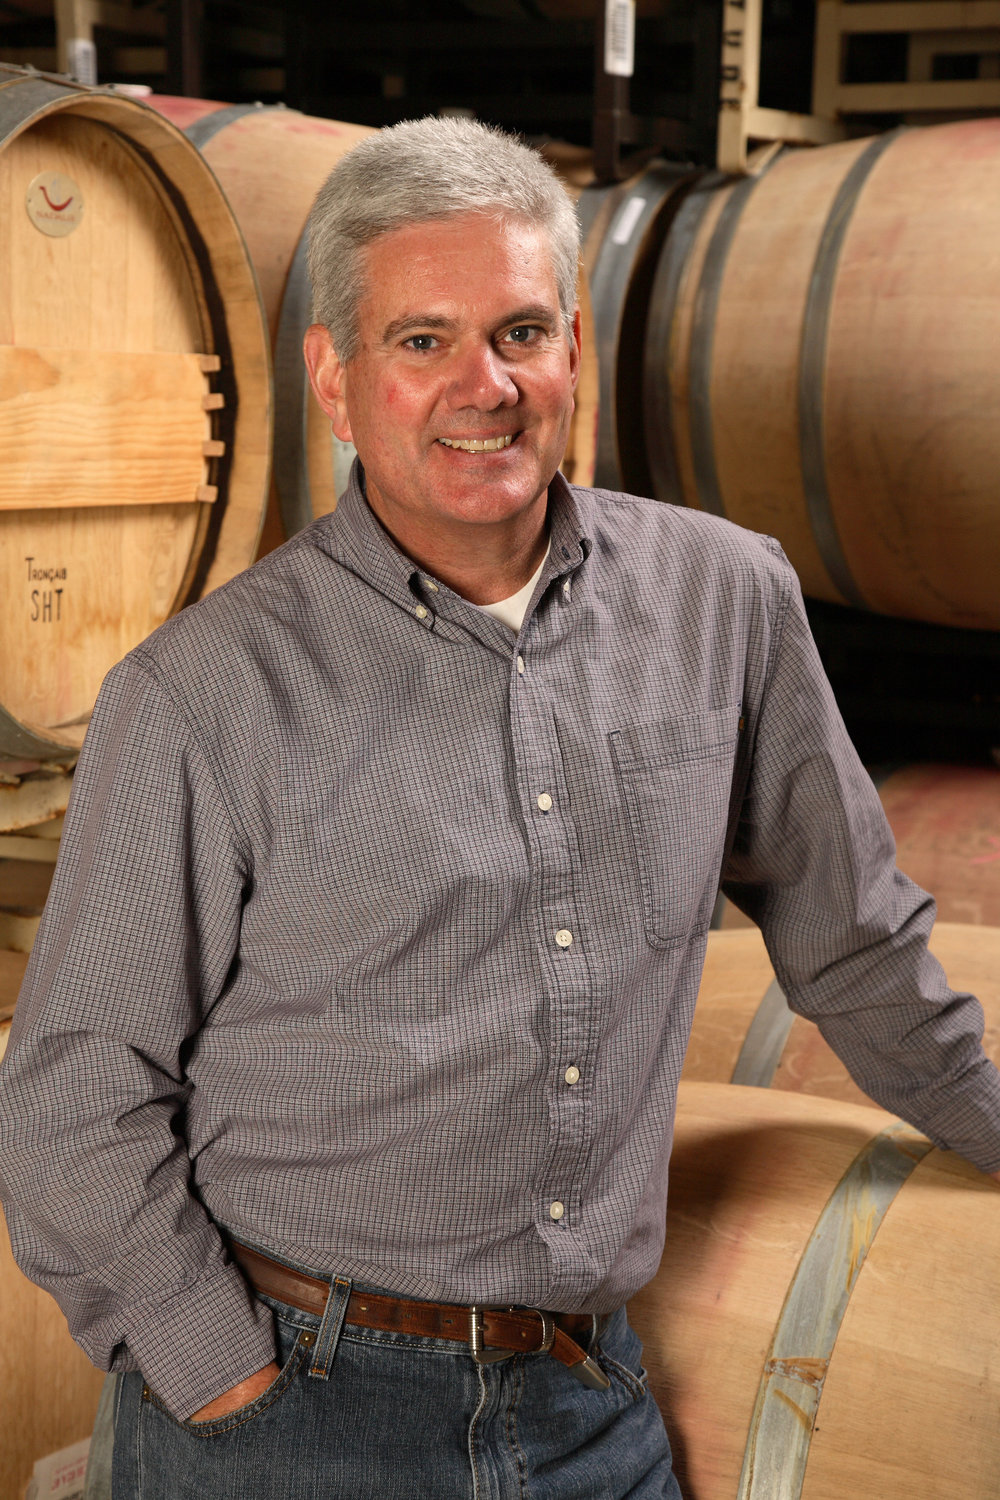 Etude winemaker Jon Priest